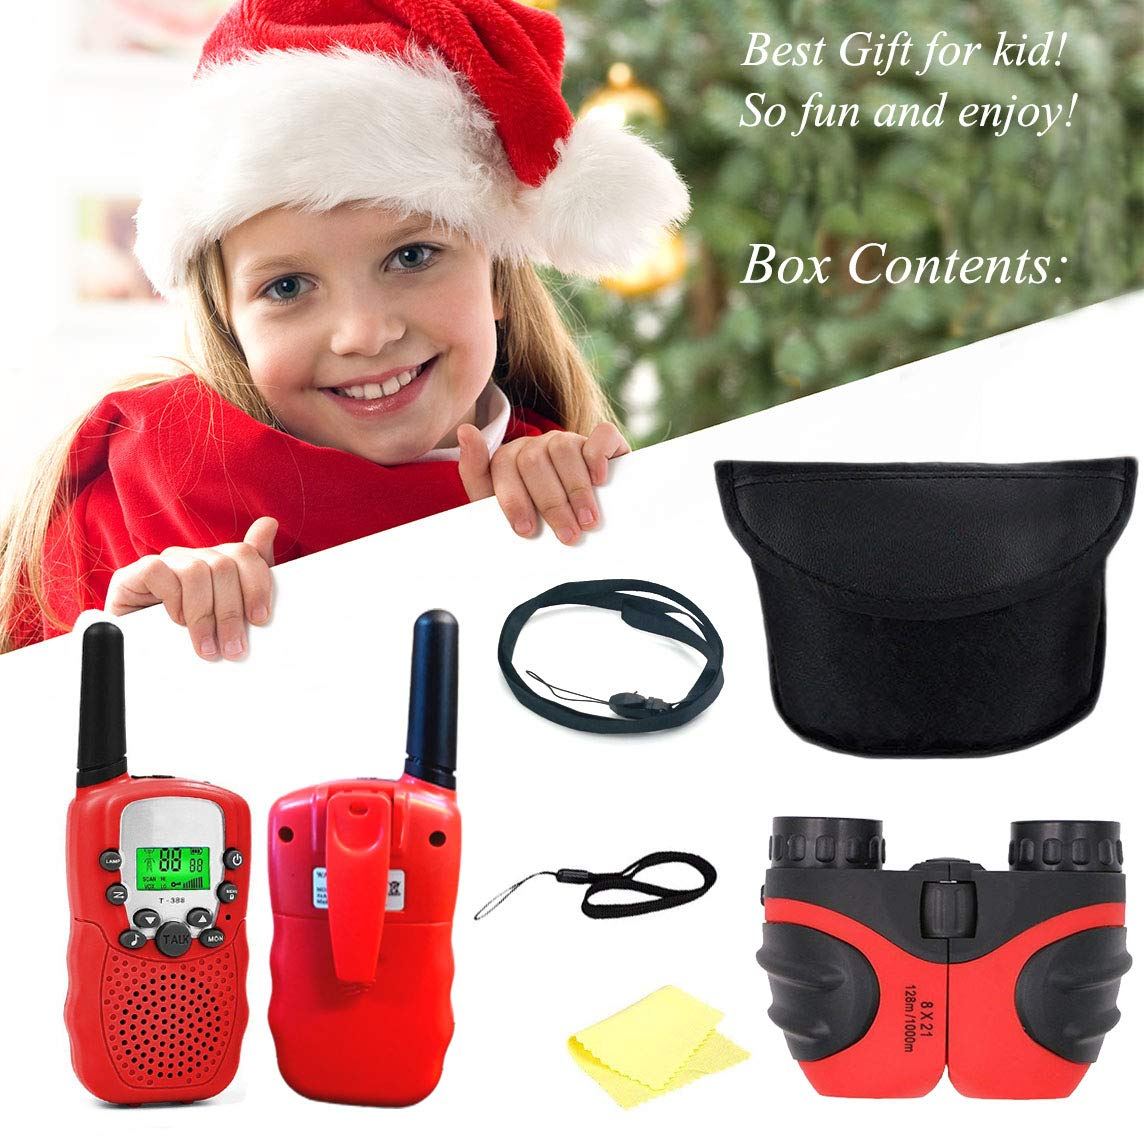 XIYITOY Compact 8x21 Shock Proof Binoculars Toys for 7 8 Year Old Boys, Long Range Kids Walkies Talkies for Outdoor Travel Hunting Boy Gifts Age 3-12 Girls &Gifts Age 3-12(Red) by XIYITOY (Image #7)